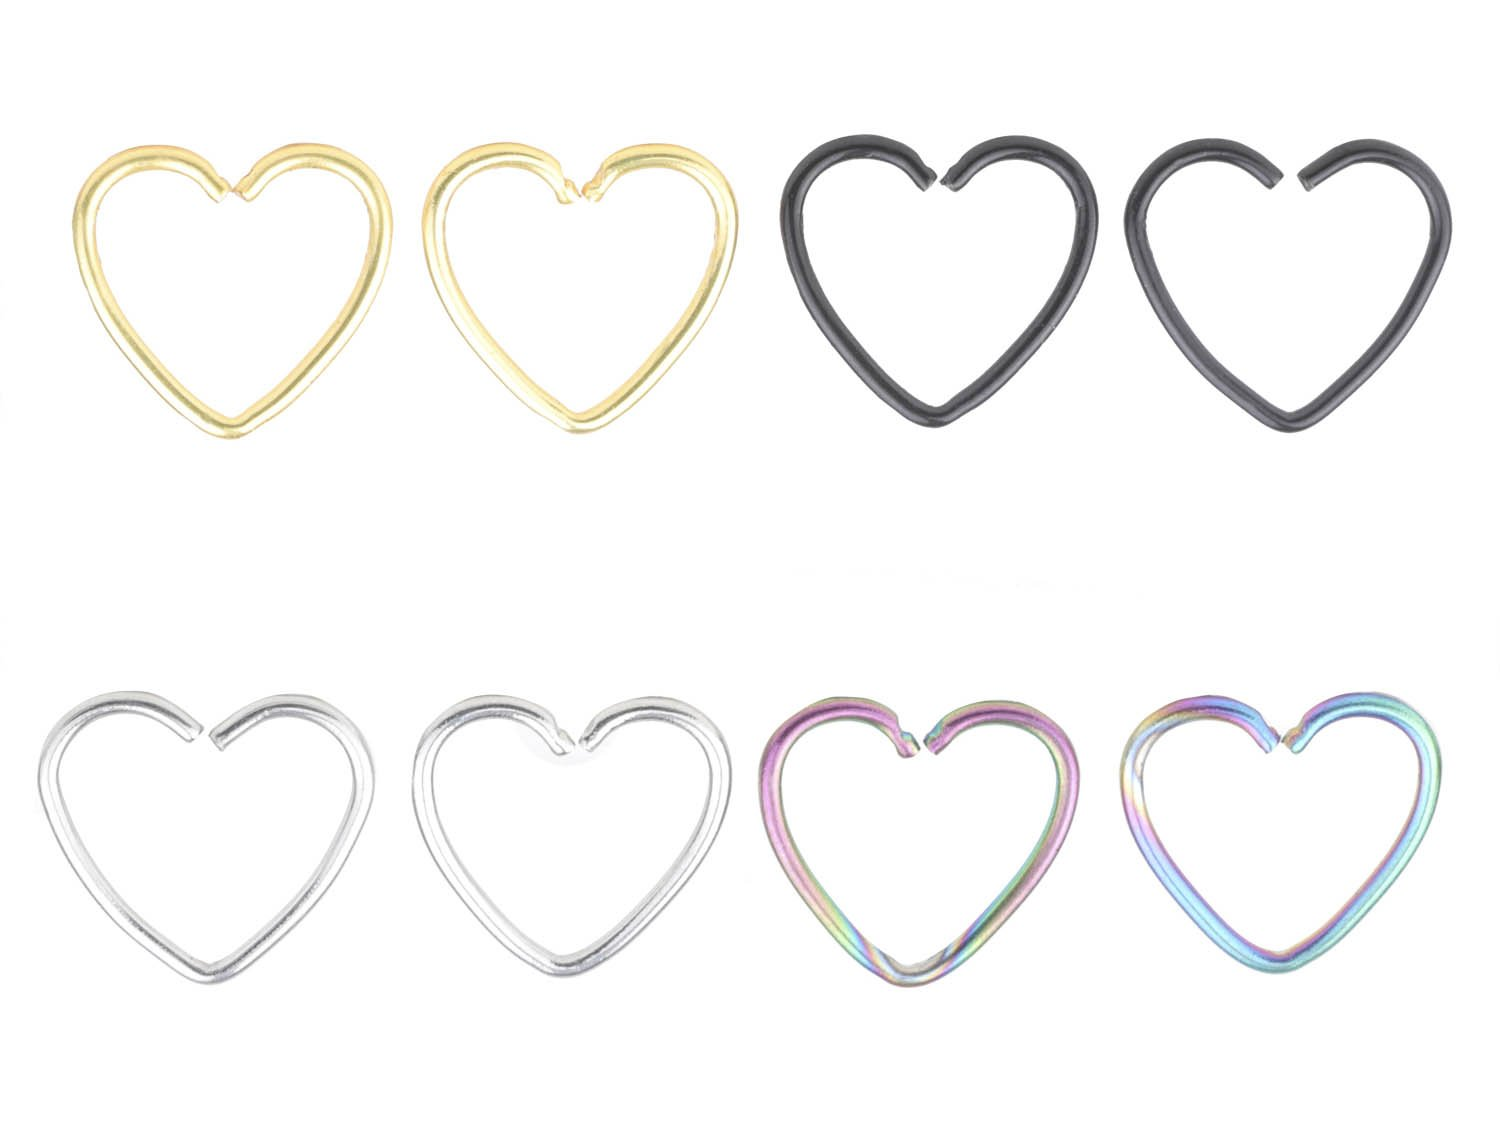 FB 18G 316L Surgical Steel Heart Shape Earring Nose Hoop Nose Rings Cartilage Earring Body Piercing Jewelry